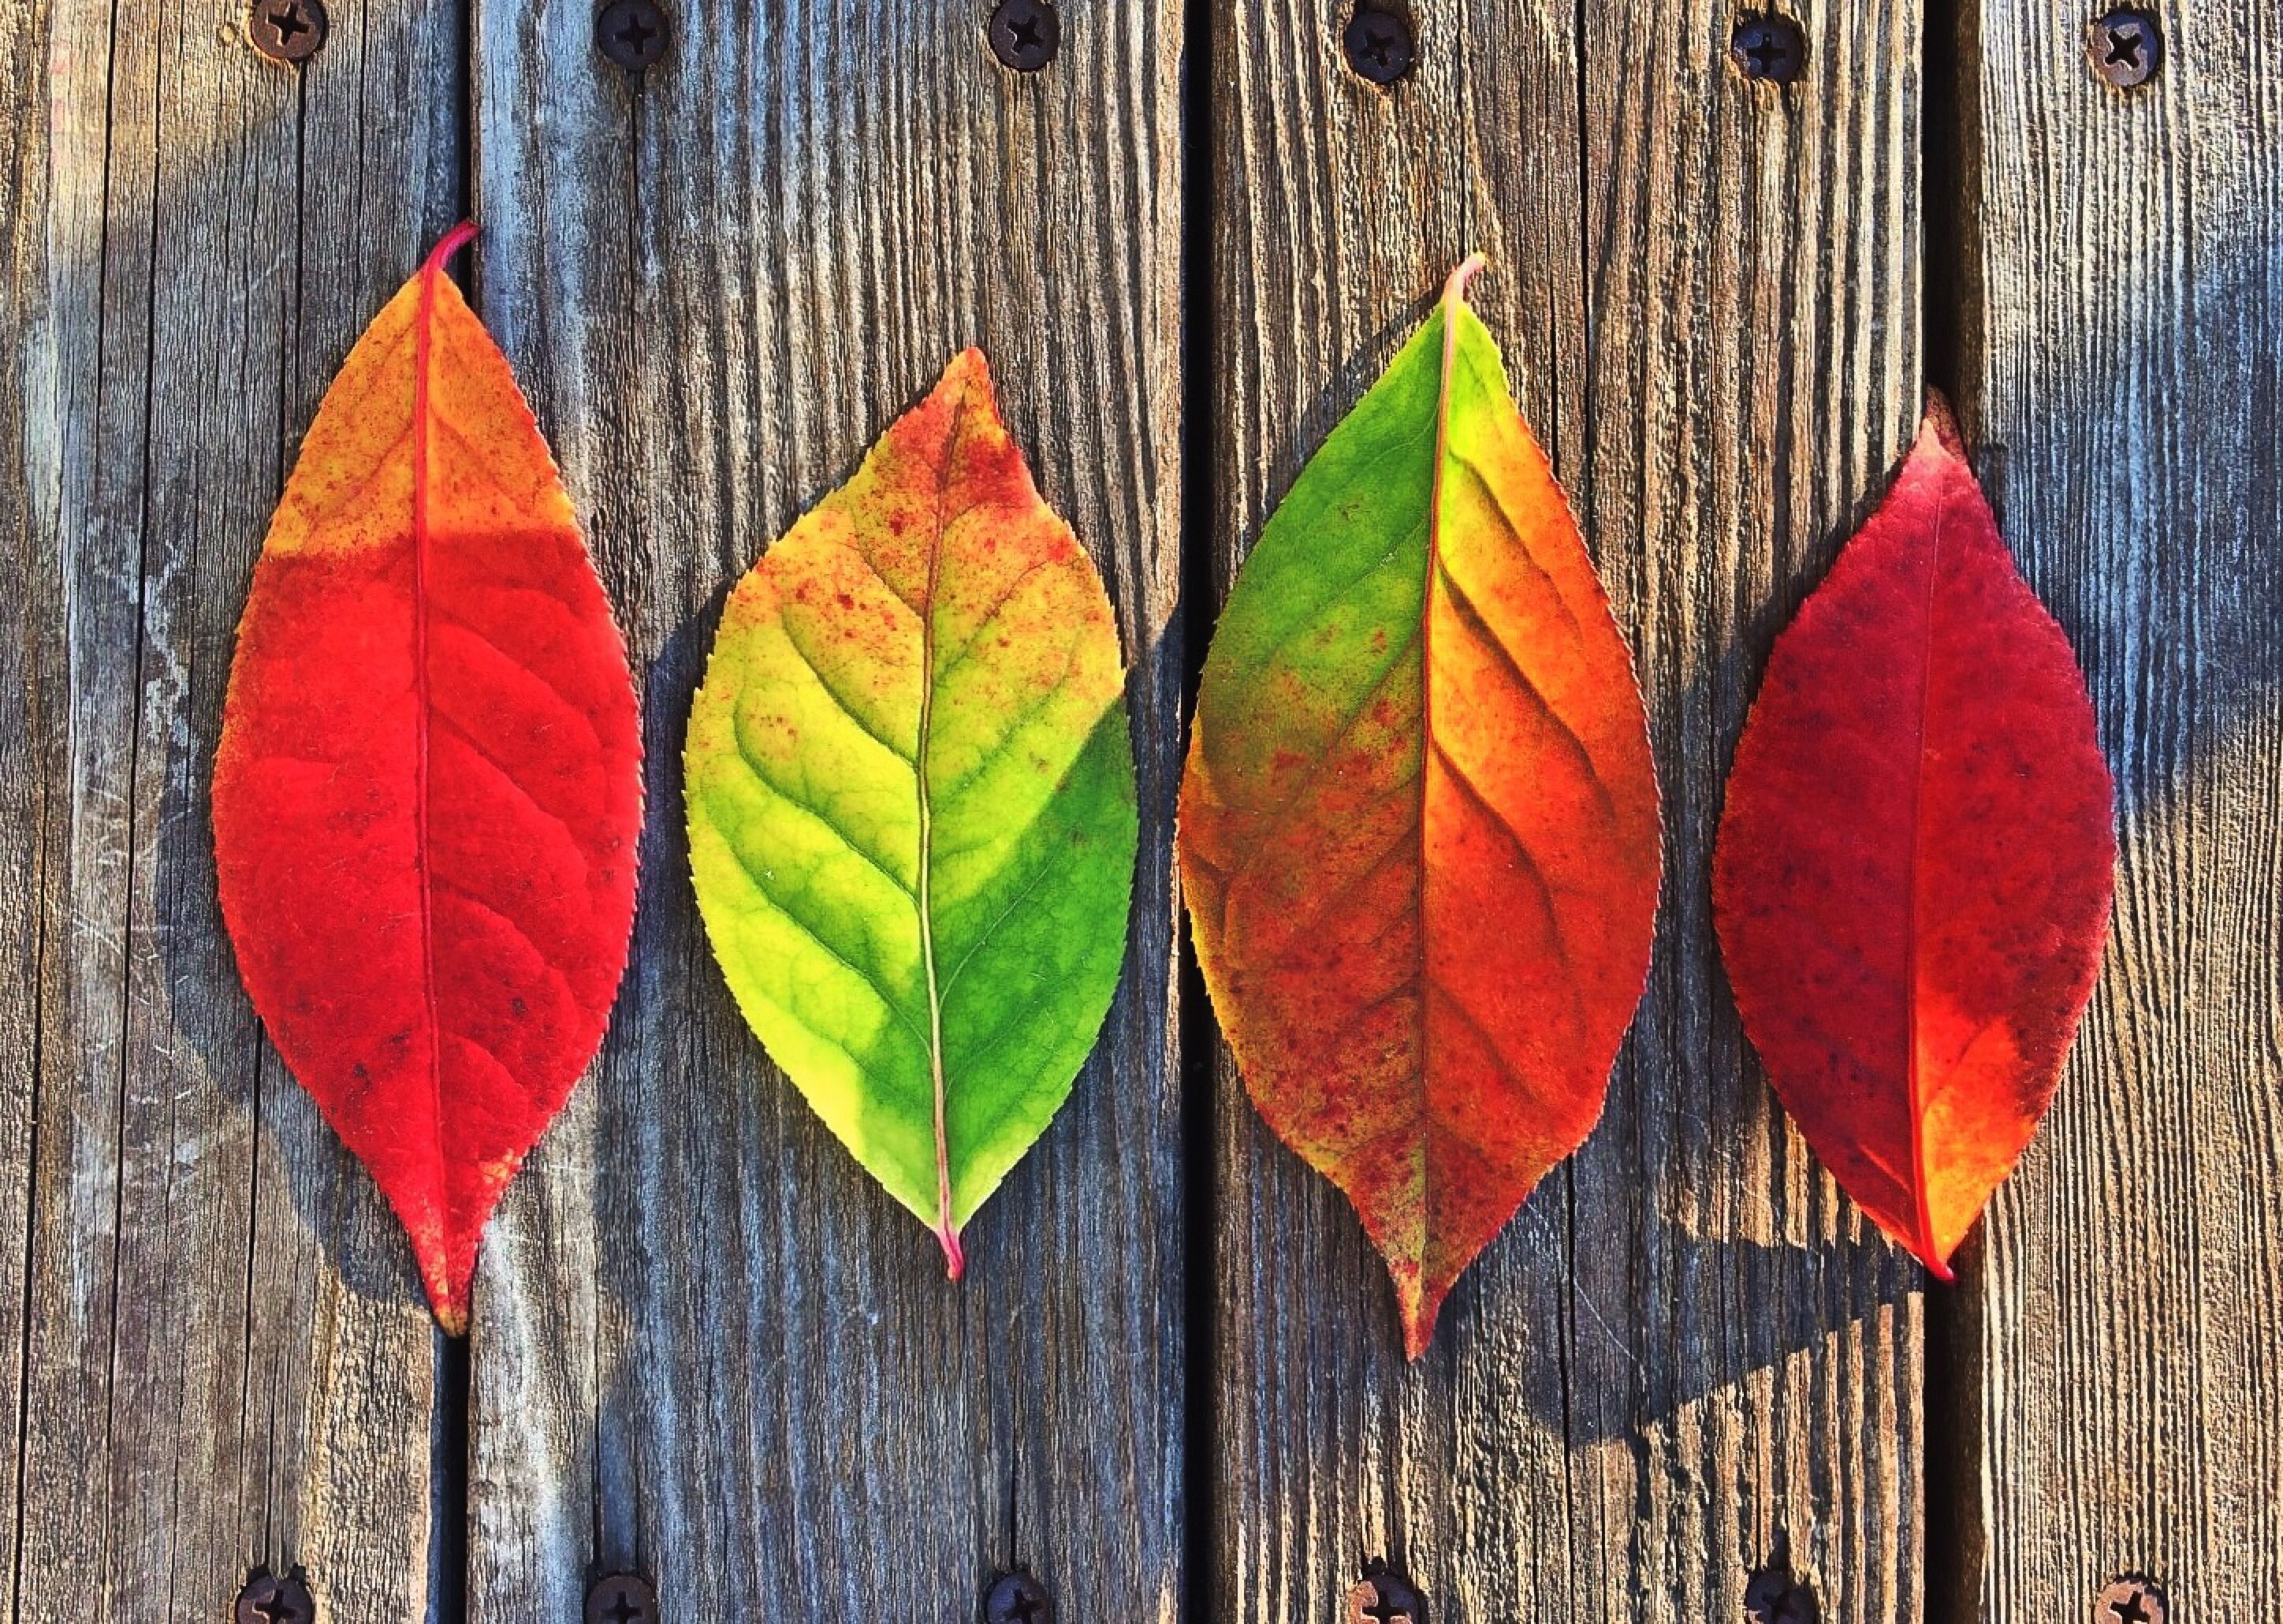 Follow these 4 tips to make your outdoor space a cozy spot you can still enjoy this fall.